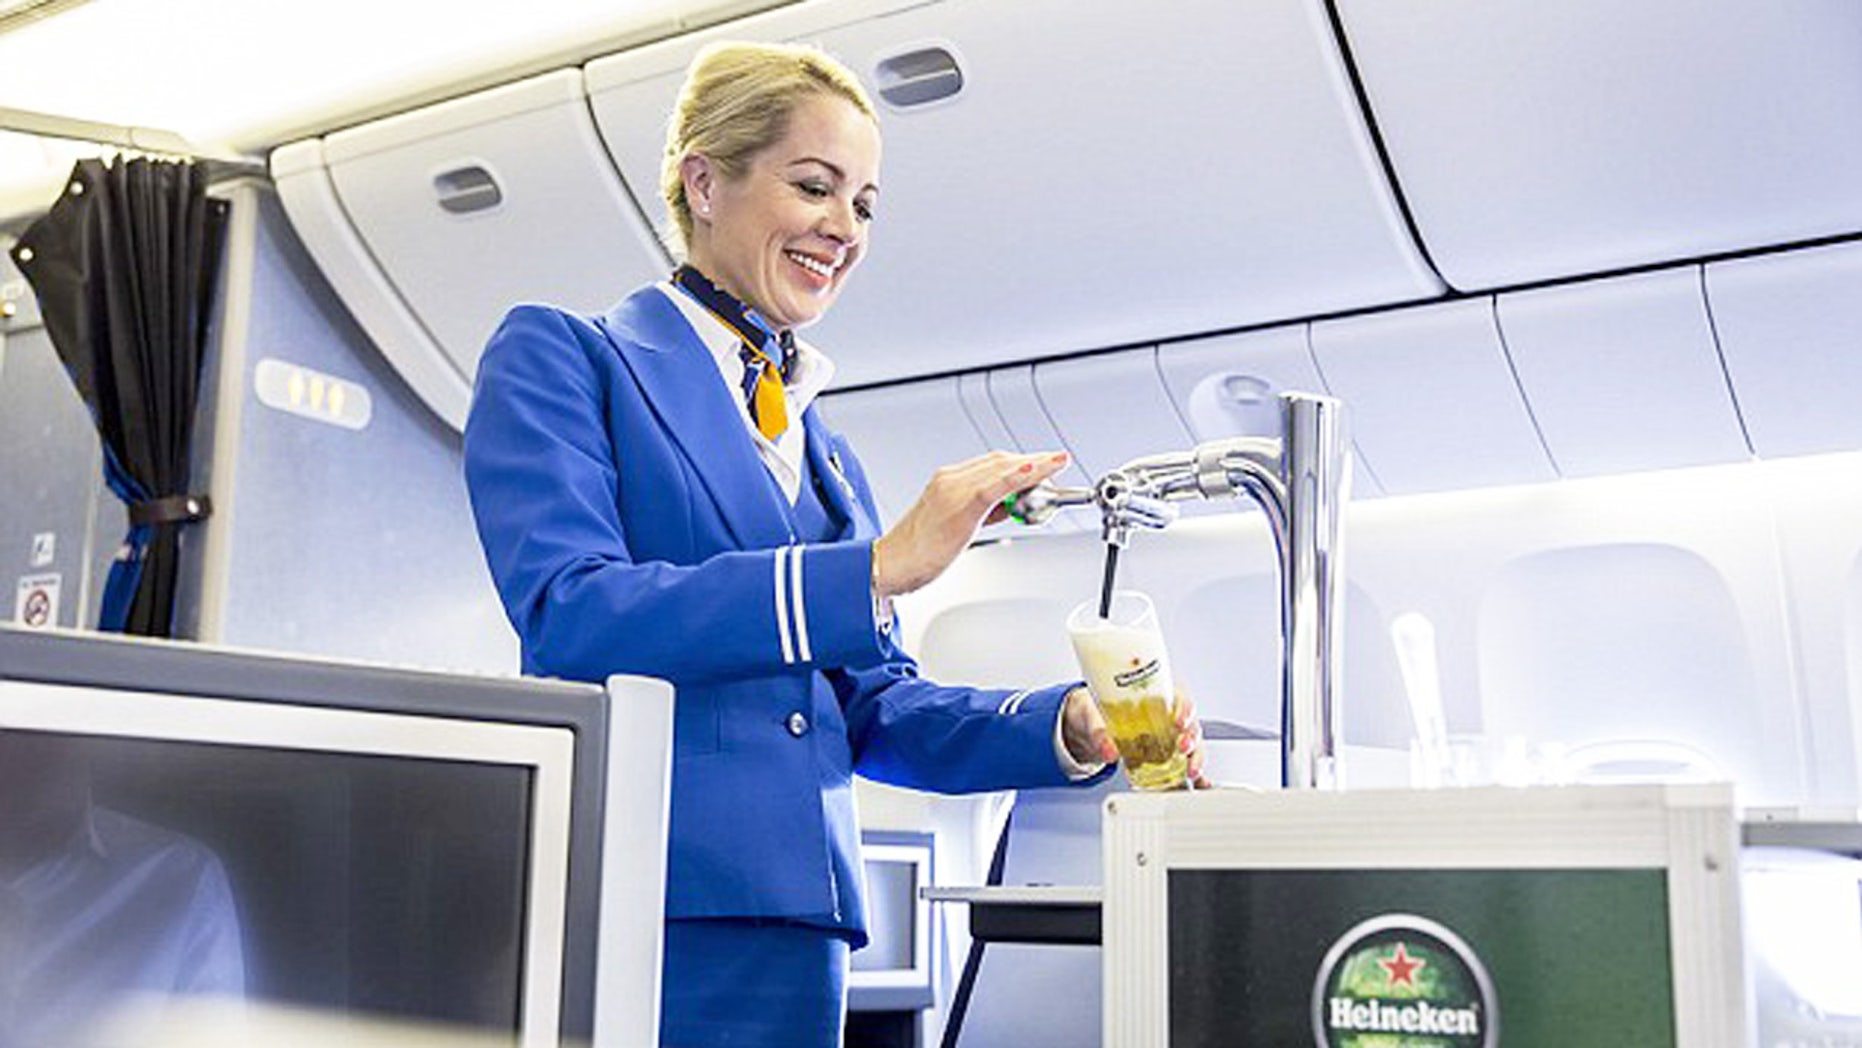 Dutch airline KLM is premiering the first ever in-flight beer draft system.